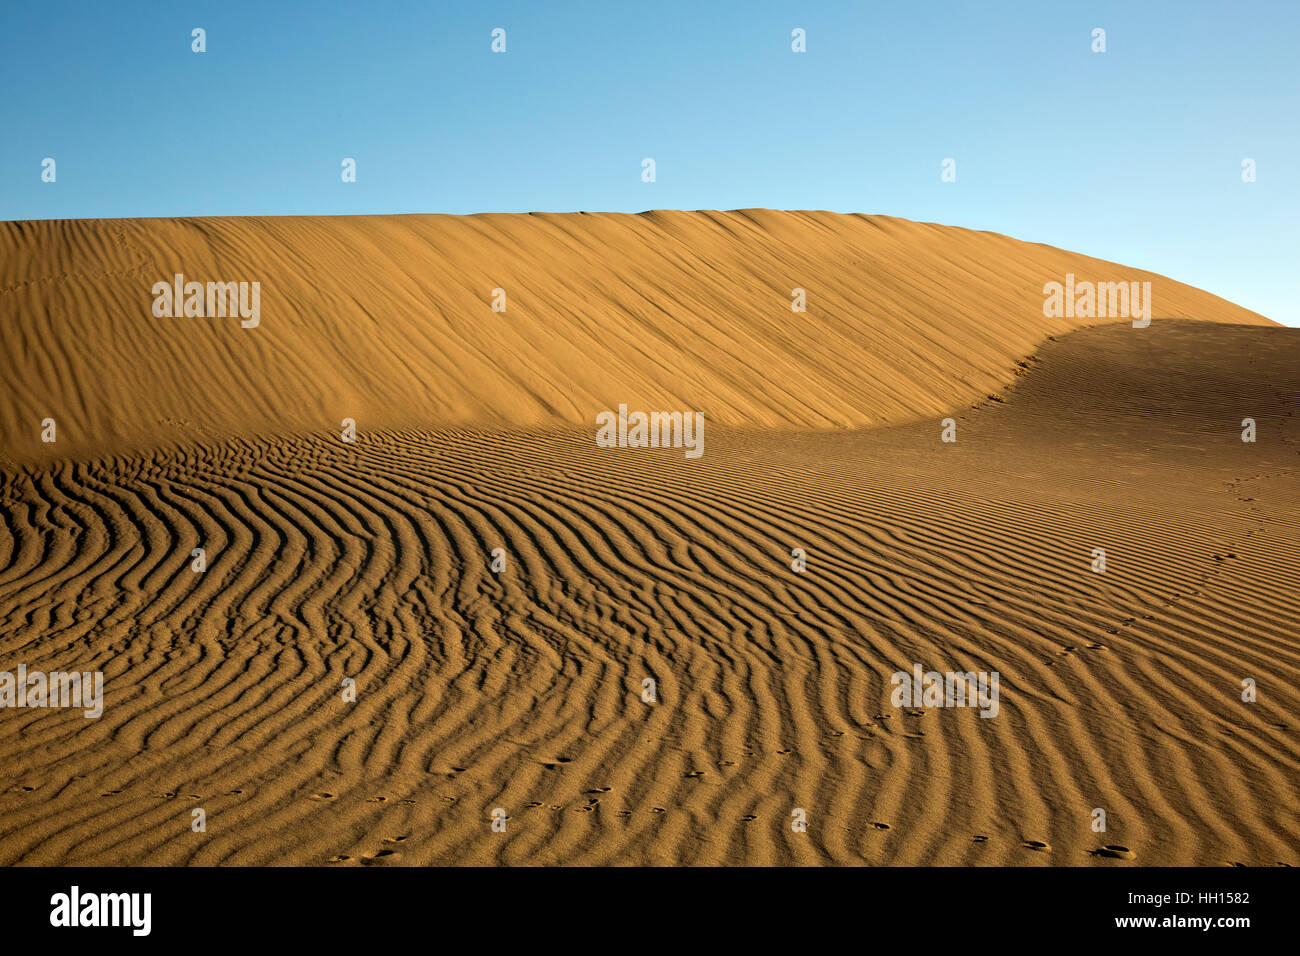 ID00675-00...IDAHO - Patterns and animal tracks in the sand at Bruneau Dunes State Park near Mountain Home. - Stock Image